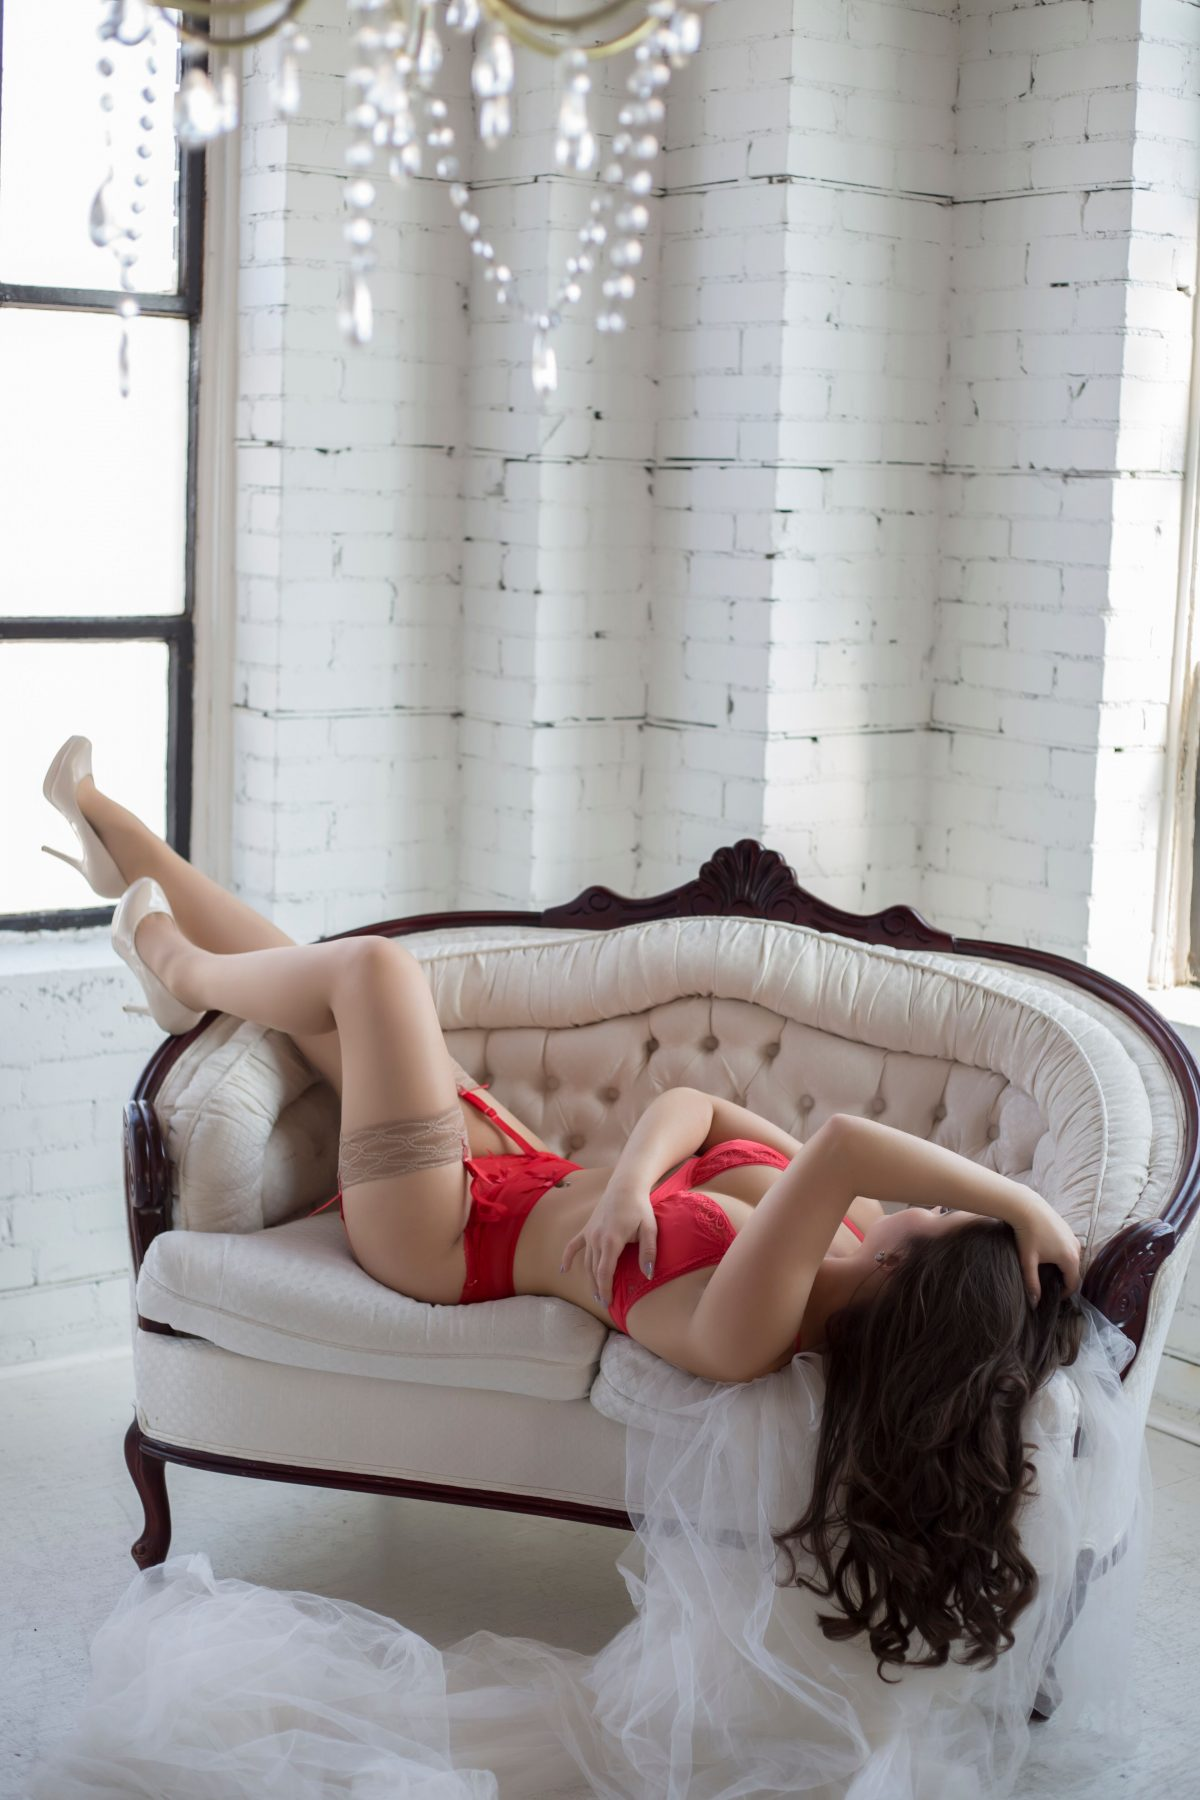 Toronto escorts companion upscale Kara Disability-friendly Non-smoking Young Slender Curvy Natural Brunette European None Returning